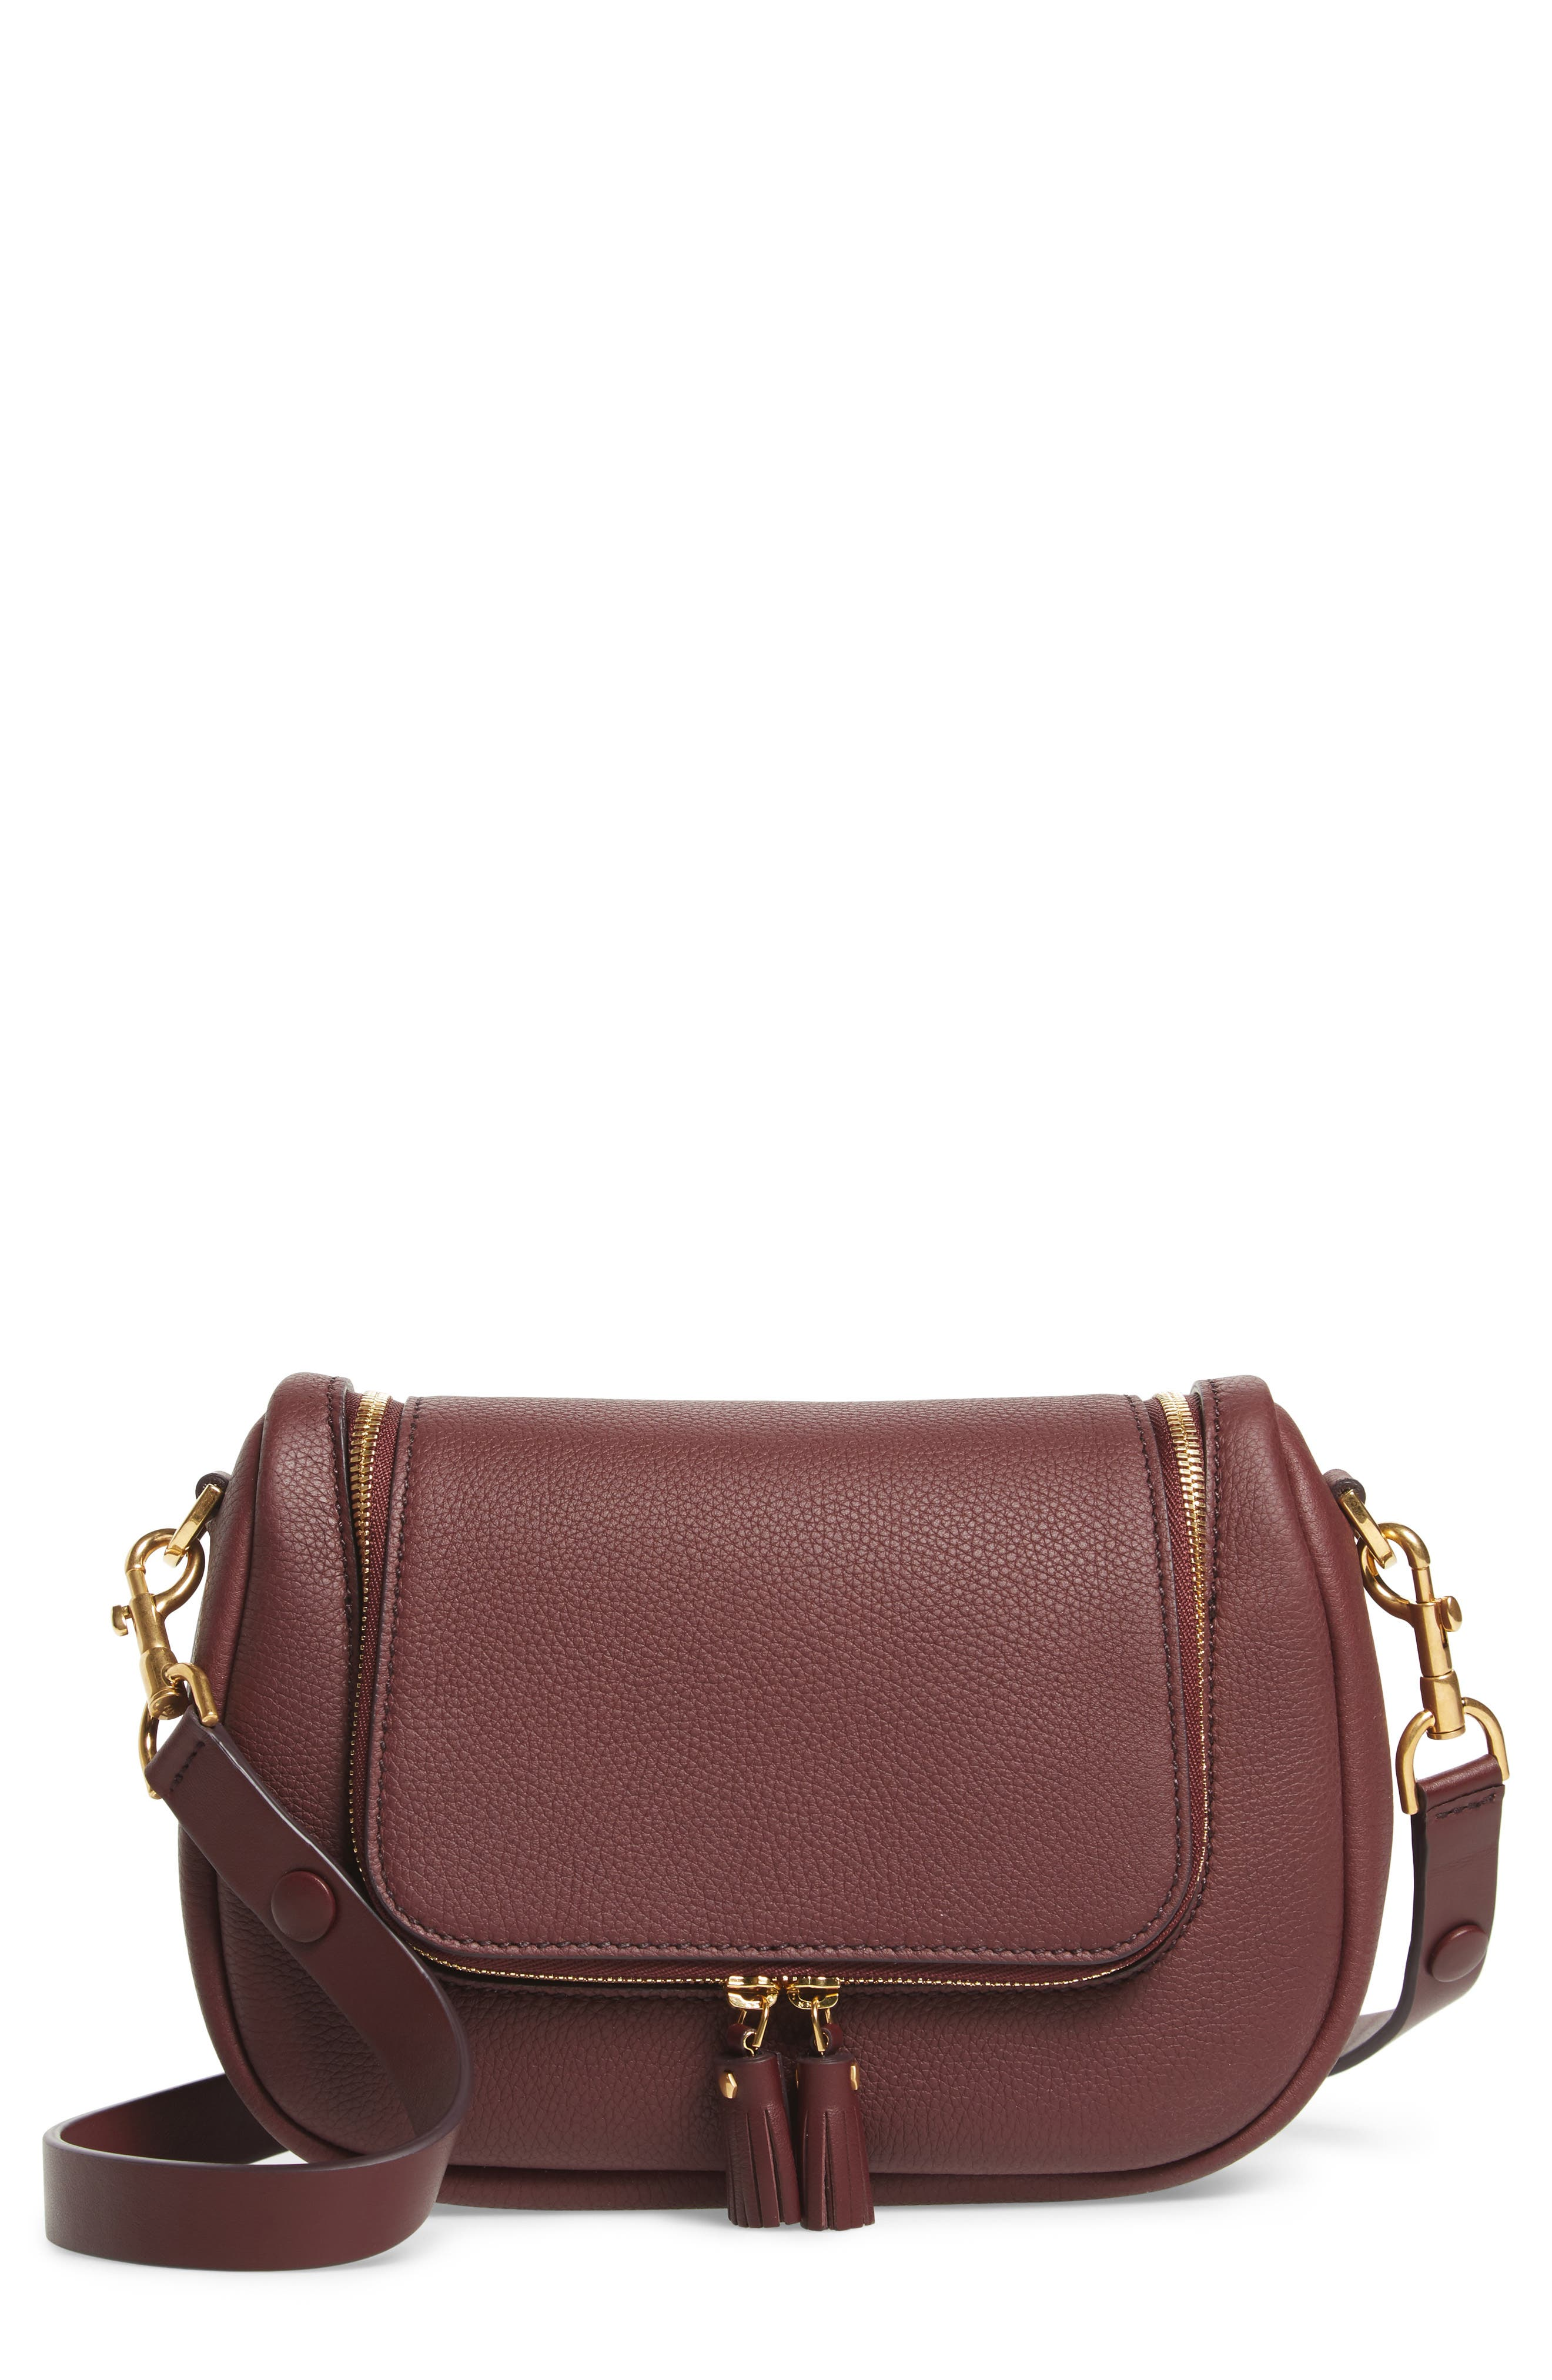 Alternate Image 1 Selected - Anya Hindmarch Small Vere Leather Crossbody Satchel